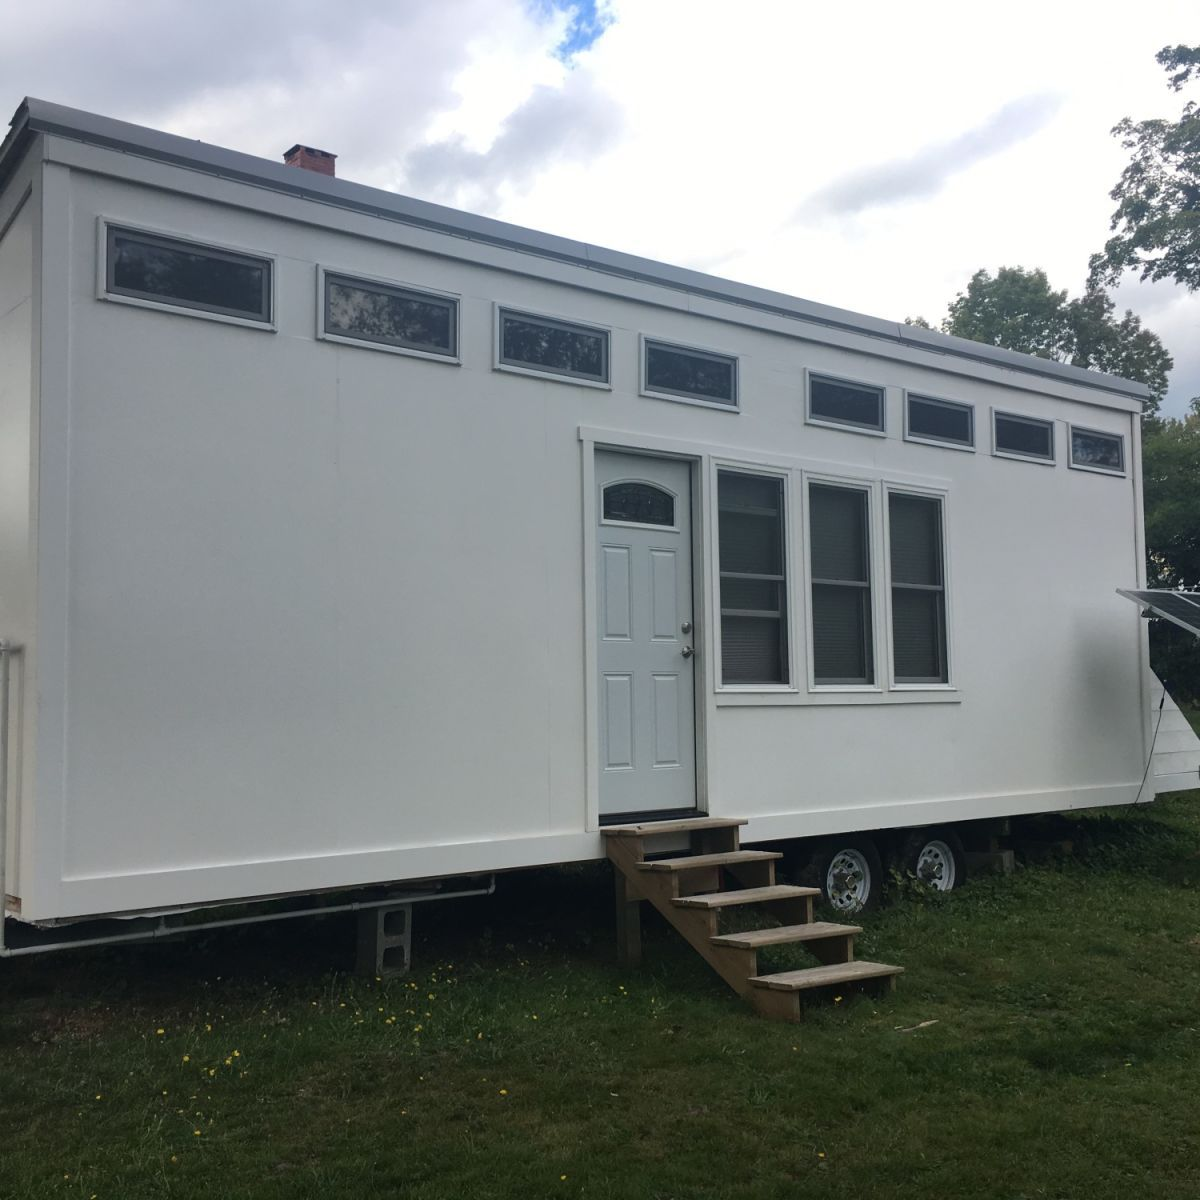 For Sale Westbrook Maine 04092 United States 39 500 Tiny House Off Grid Tiny House Tiny Houses For Sale